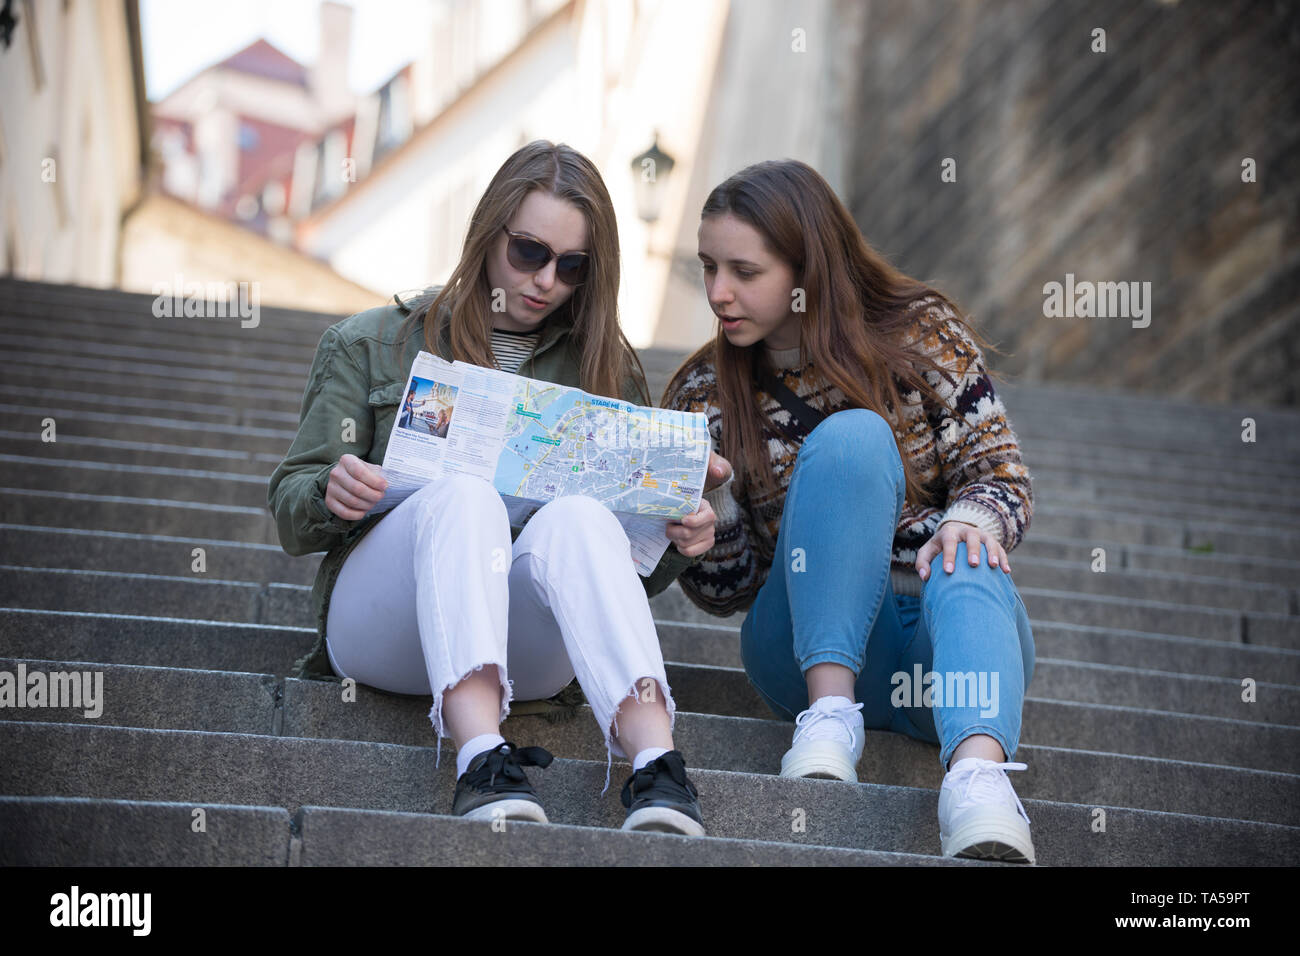 Two young traveling women sitting on stairs and looking at the map. Mid shot Stock Photo